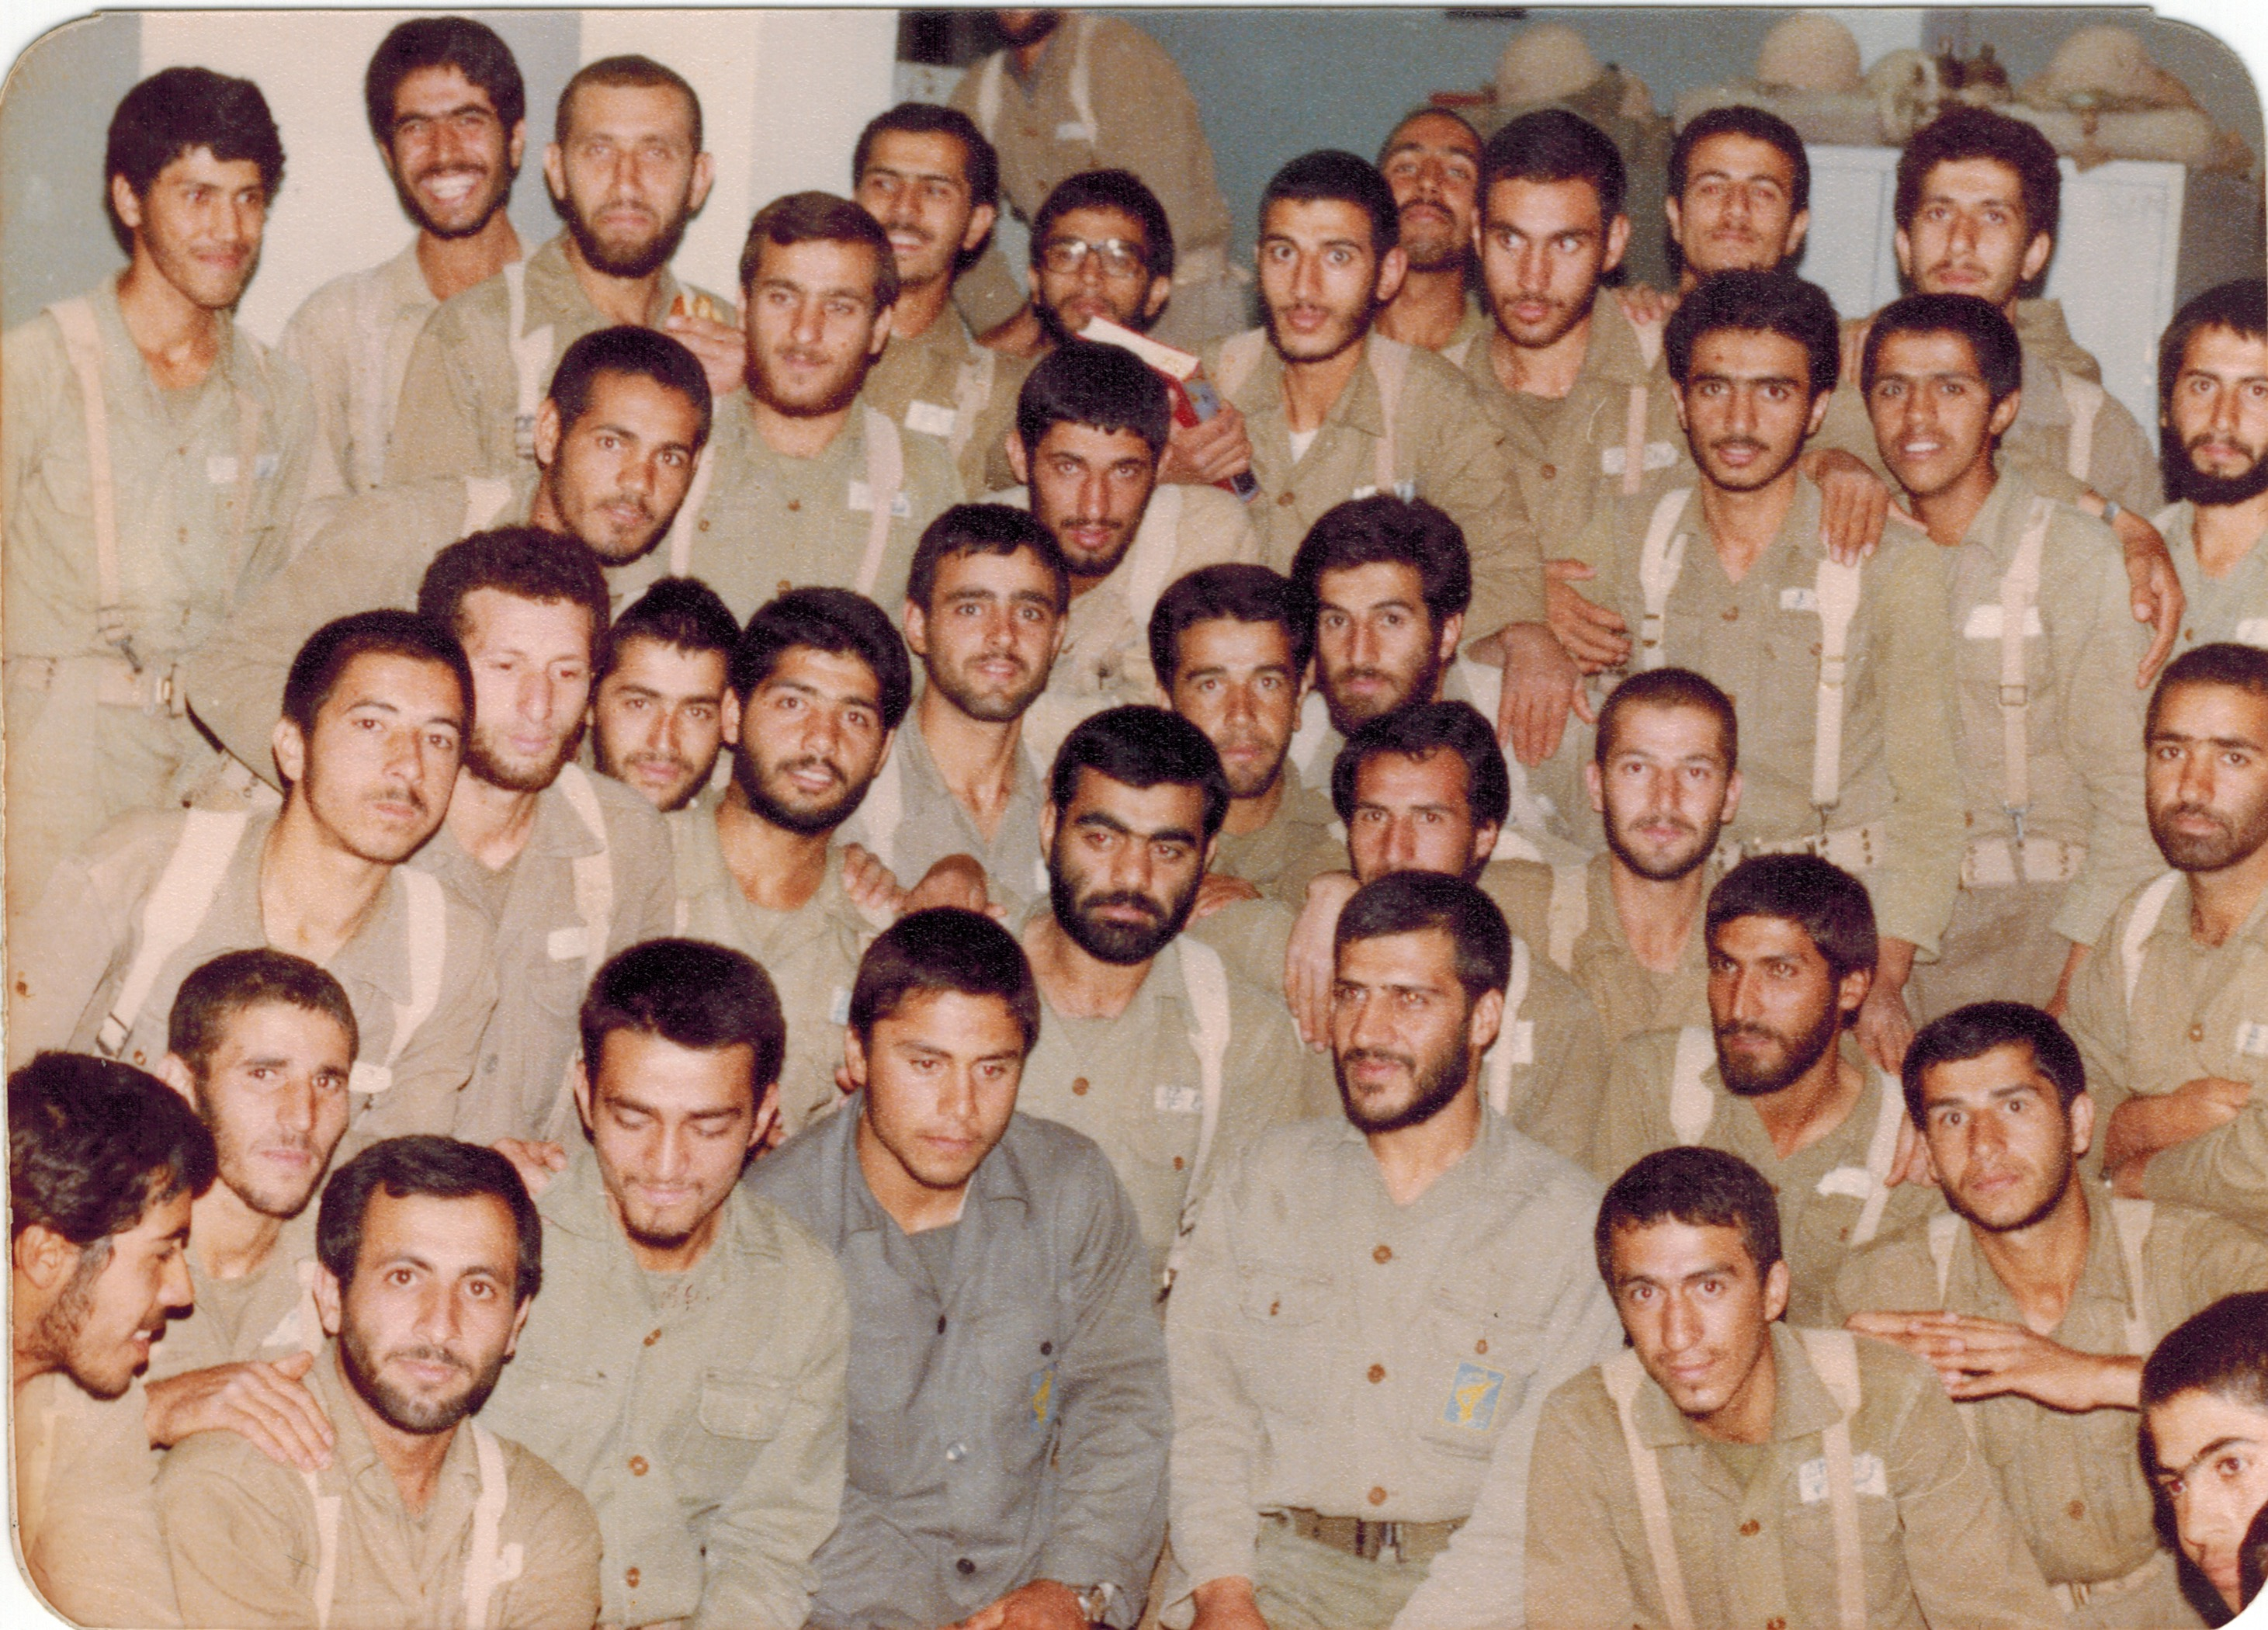 Group Portrait of Soldiers in Uniform